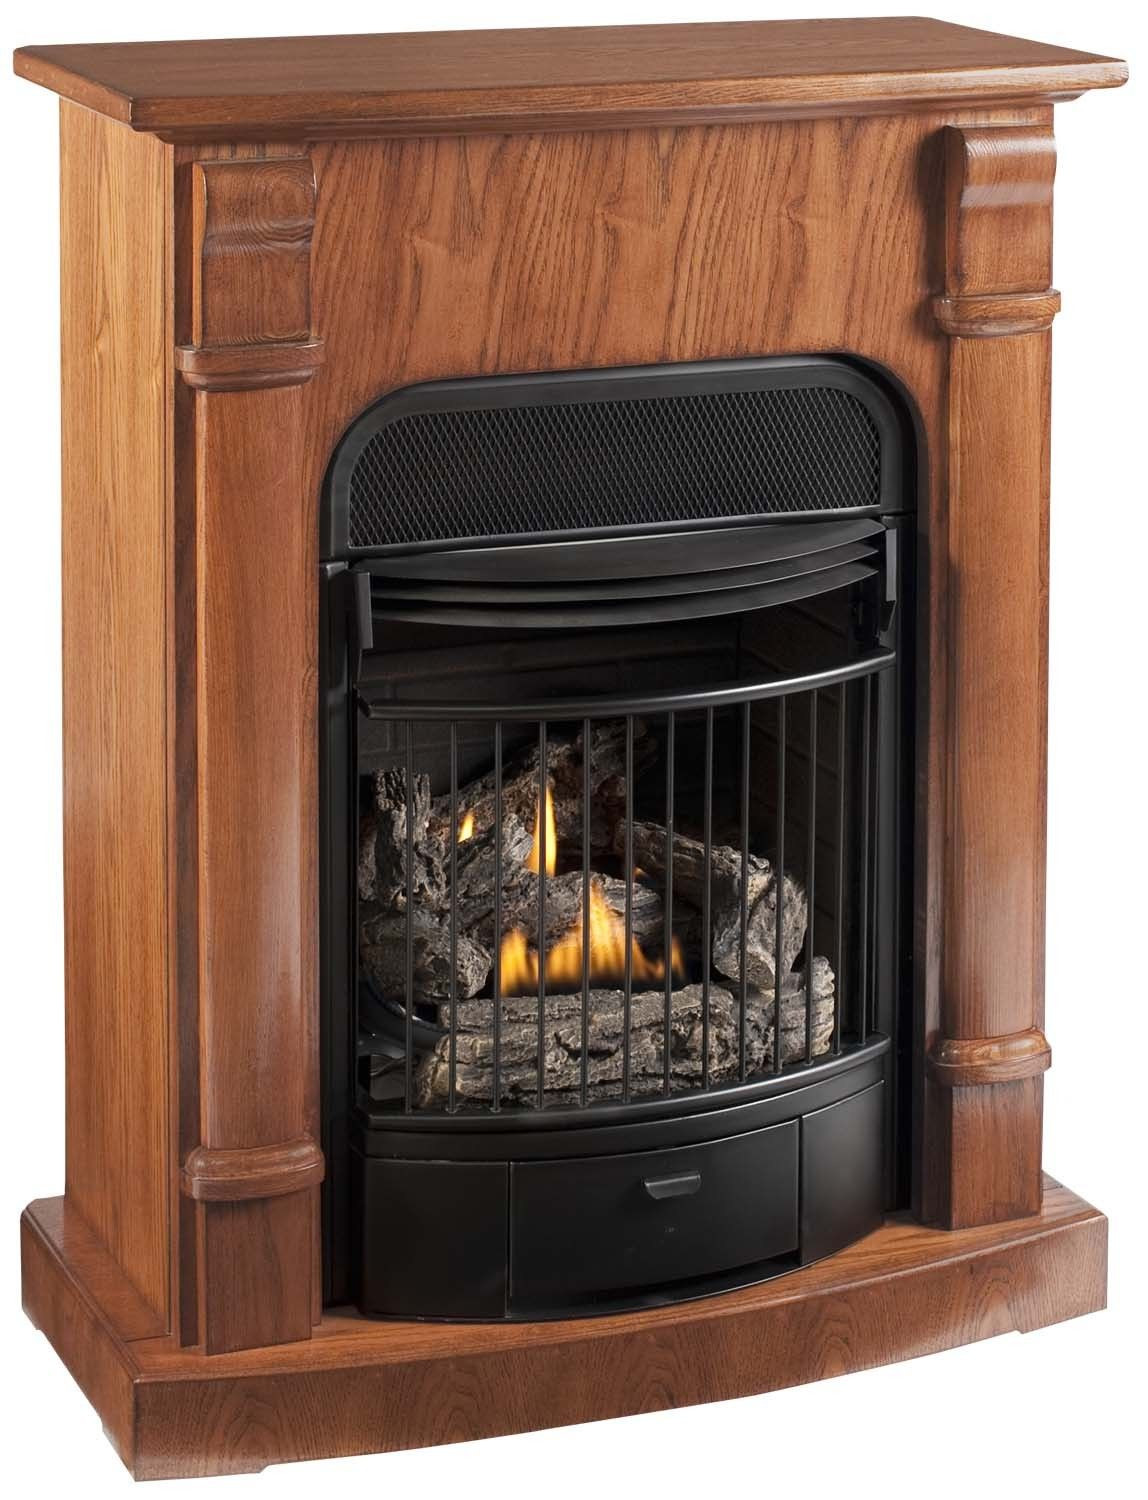 Best ideas about Propane Fireplace Heater . Save or Pin KozyWorld Windsor Four in e Dual Fuel Vent Free Gas Now.